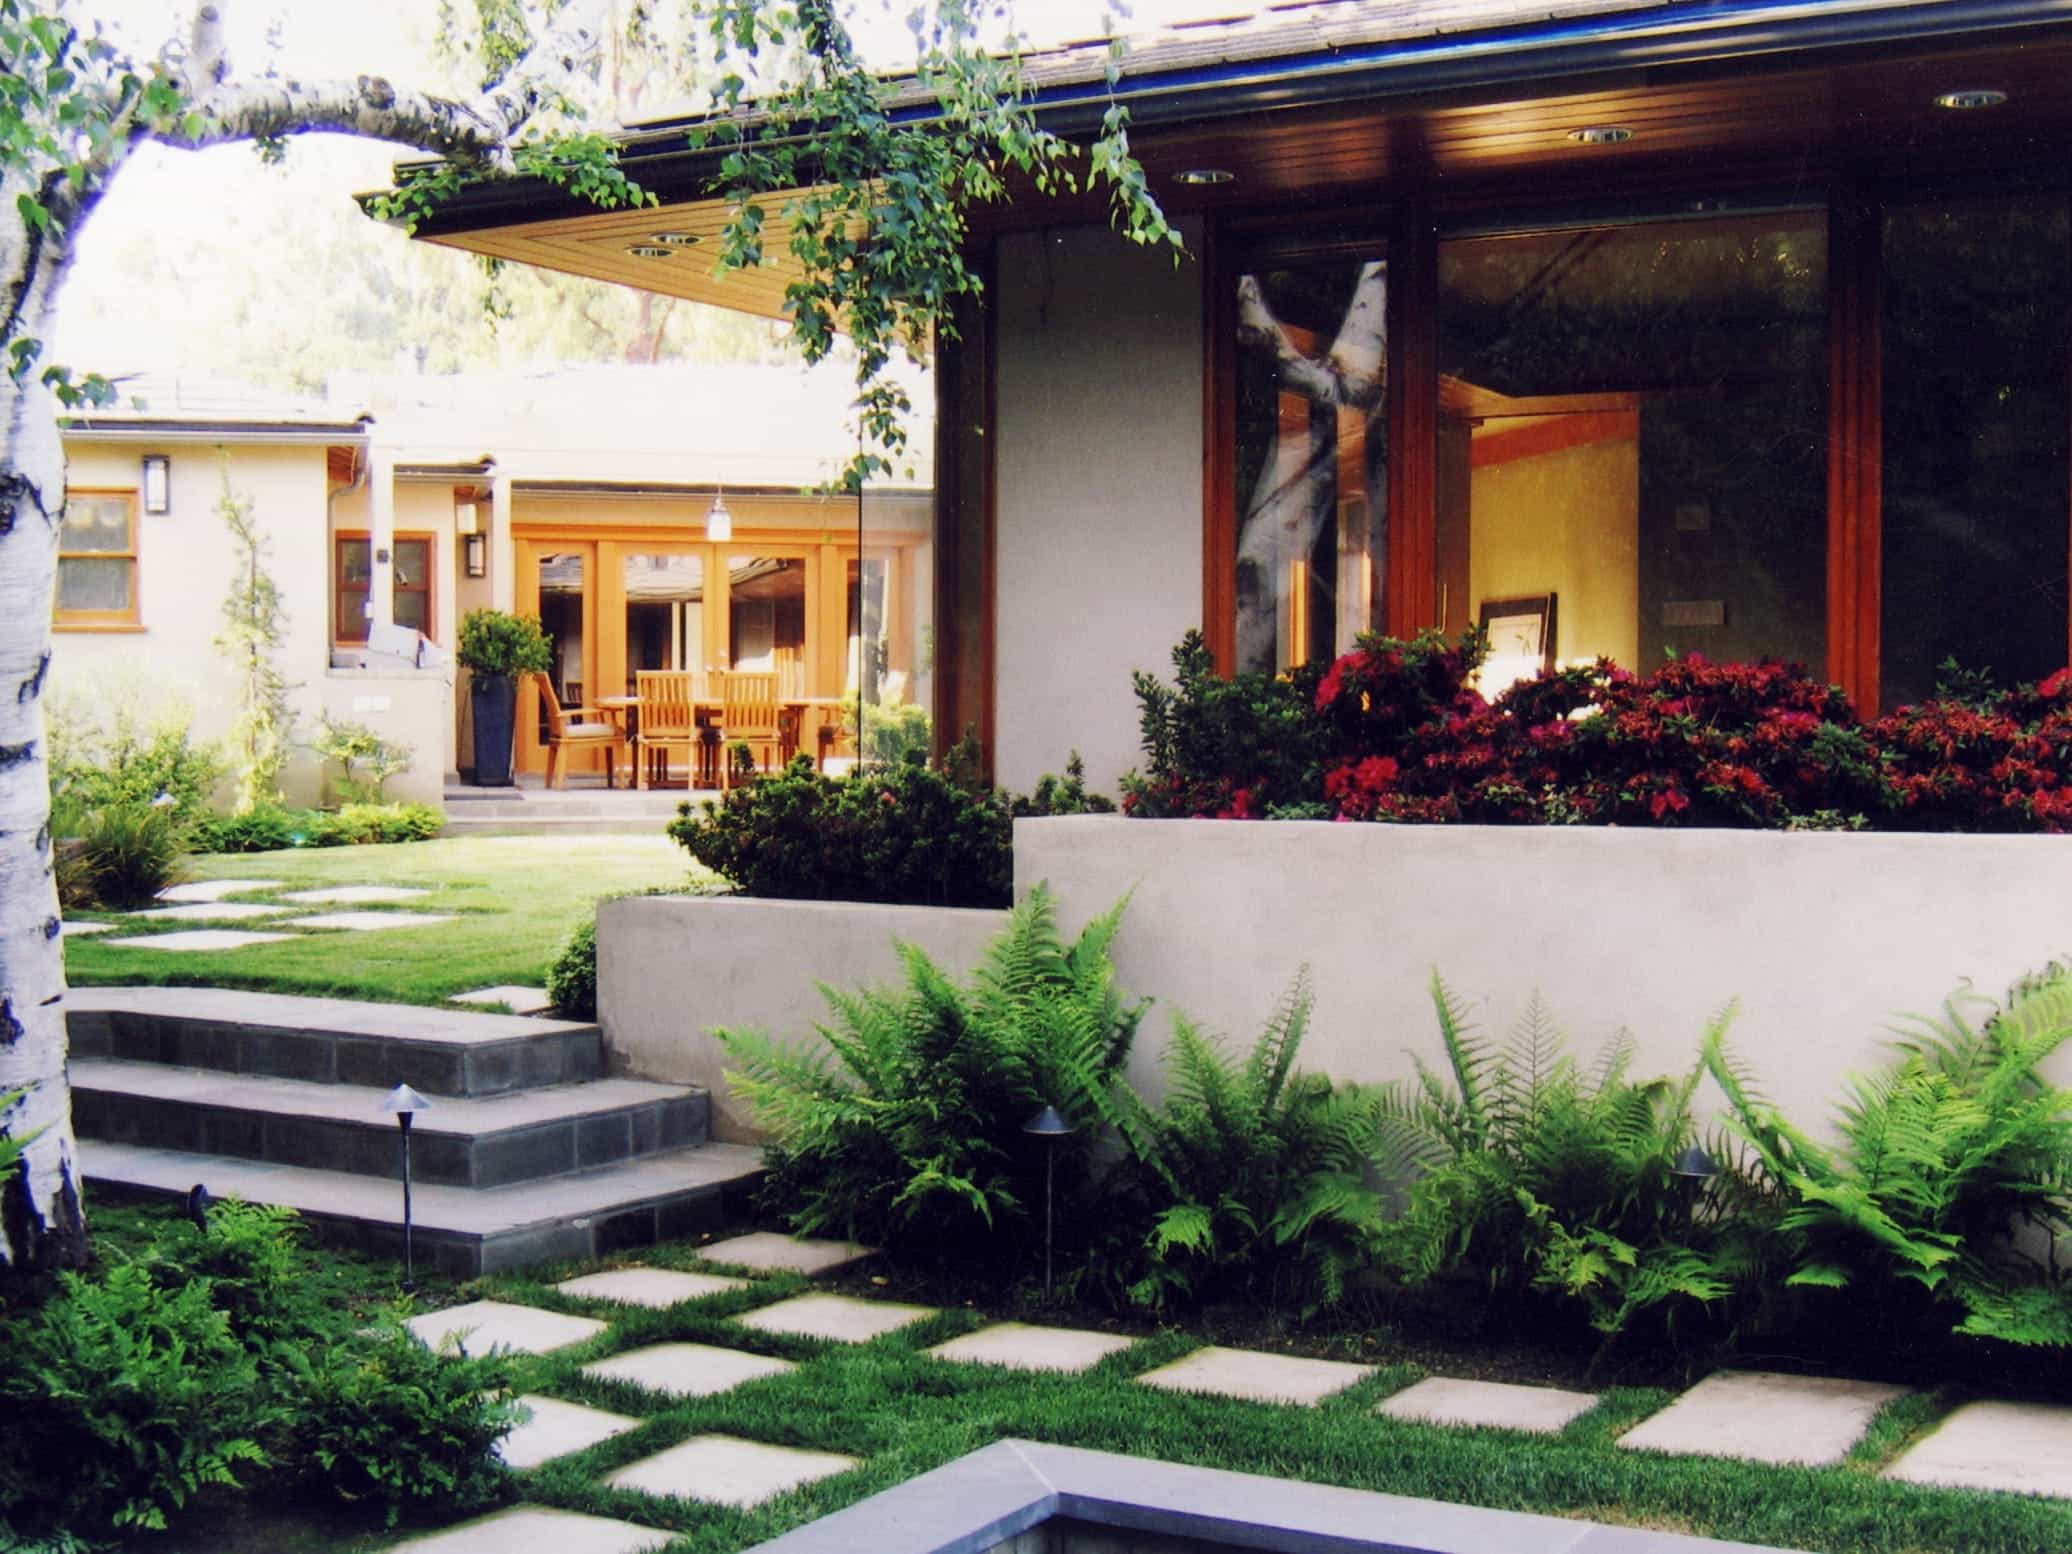 Modern Asian Garden Two Tiered Yard With Fern Lined Stone Walkway (Image 21 of 32)